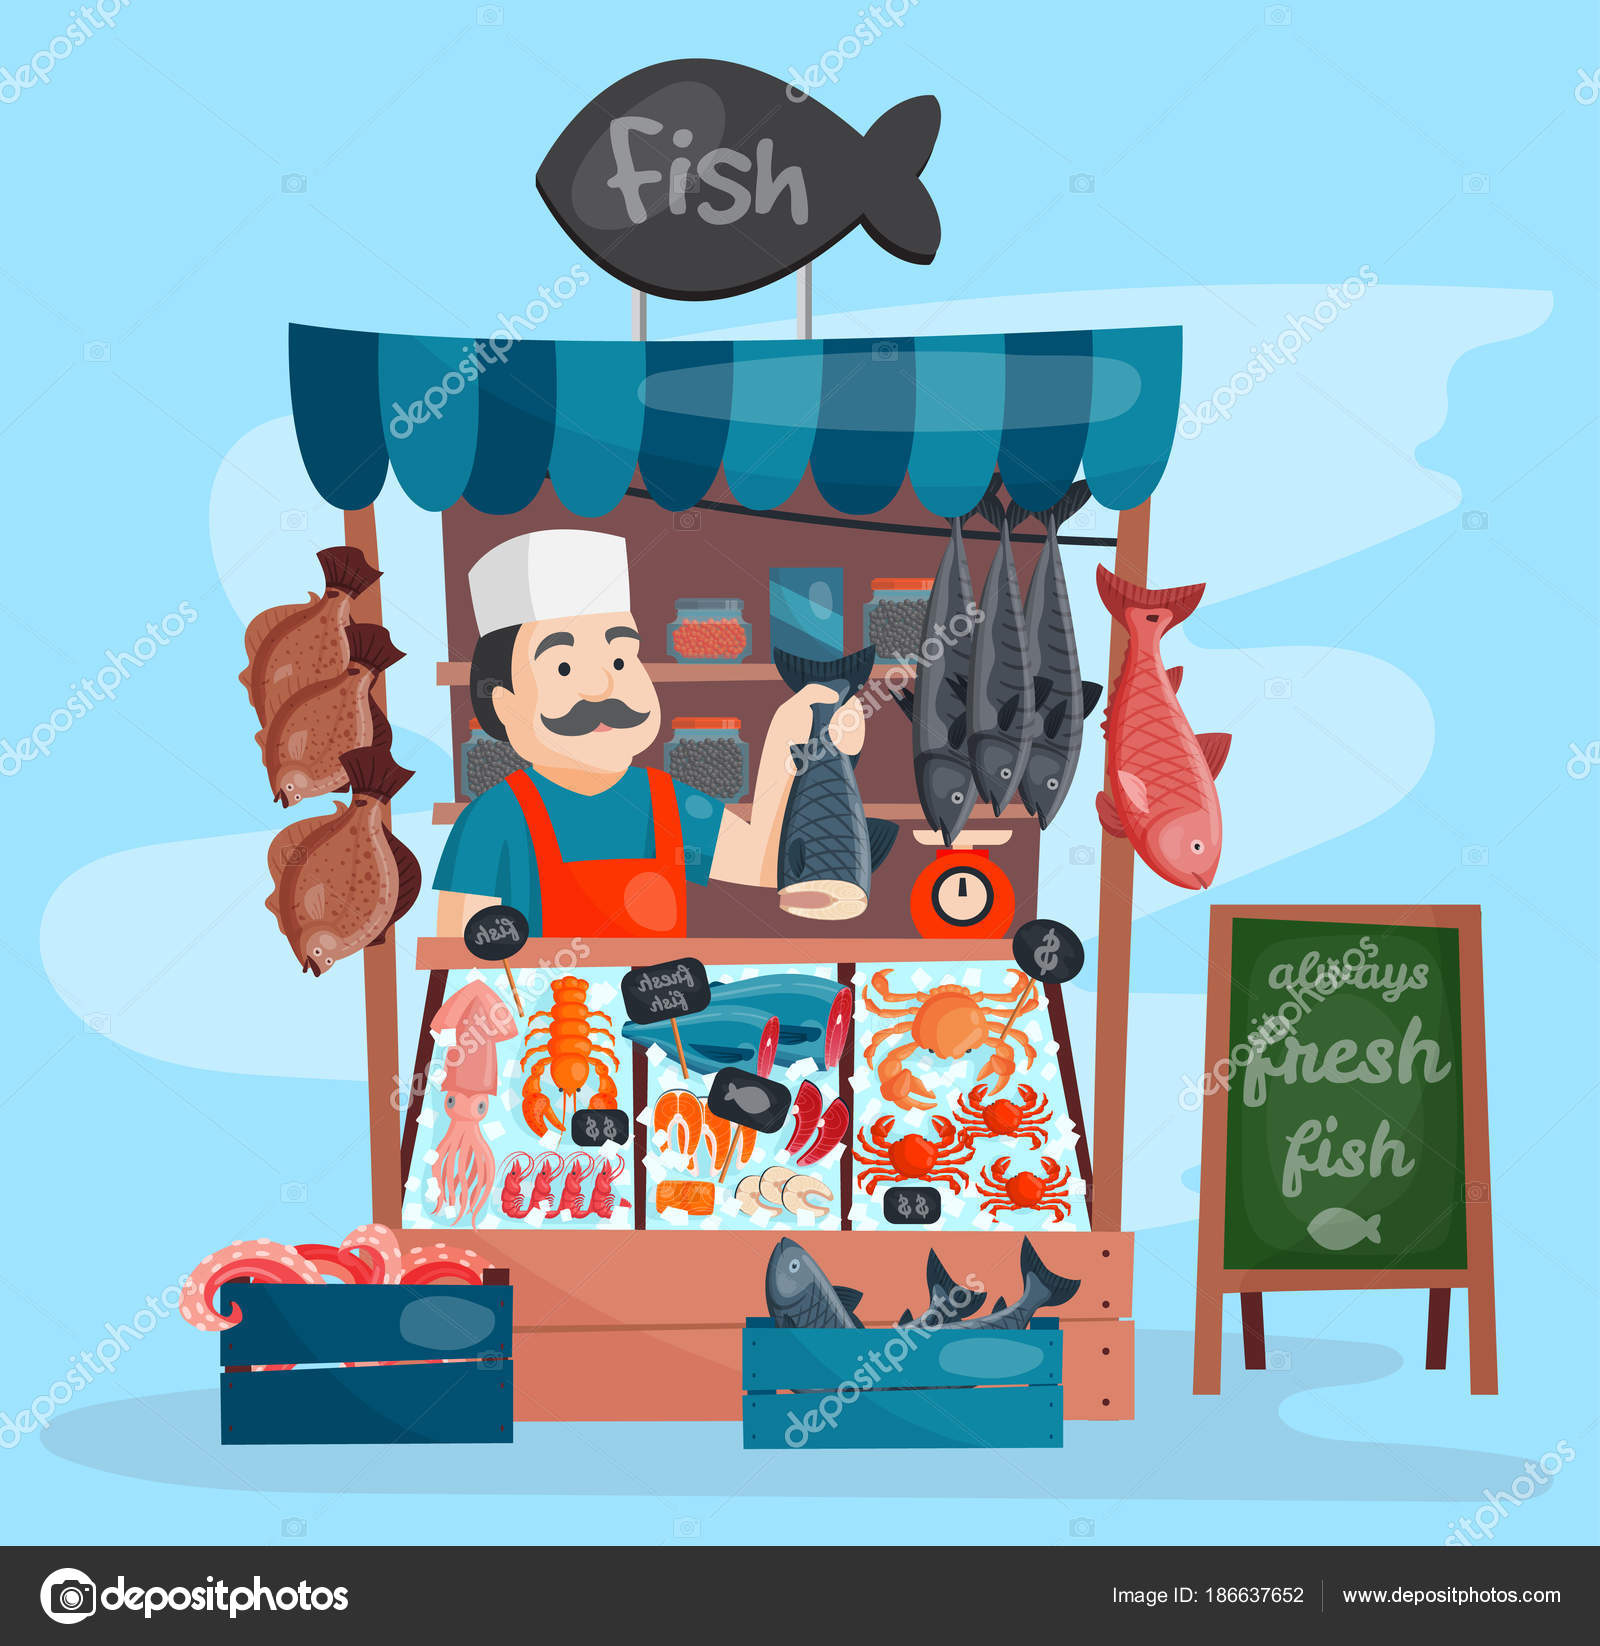 for Online fish store